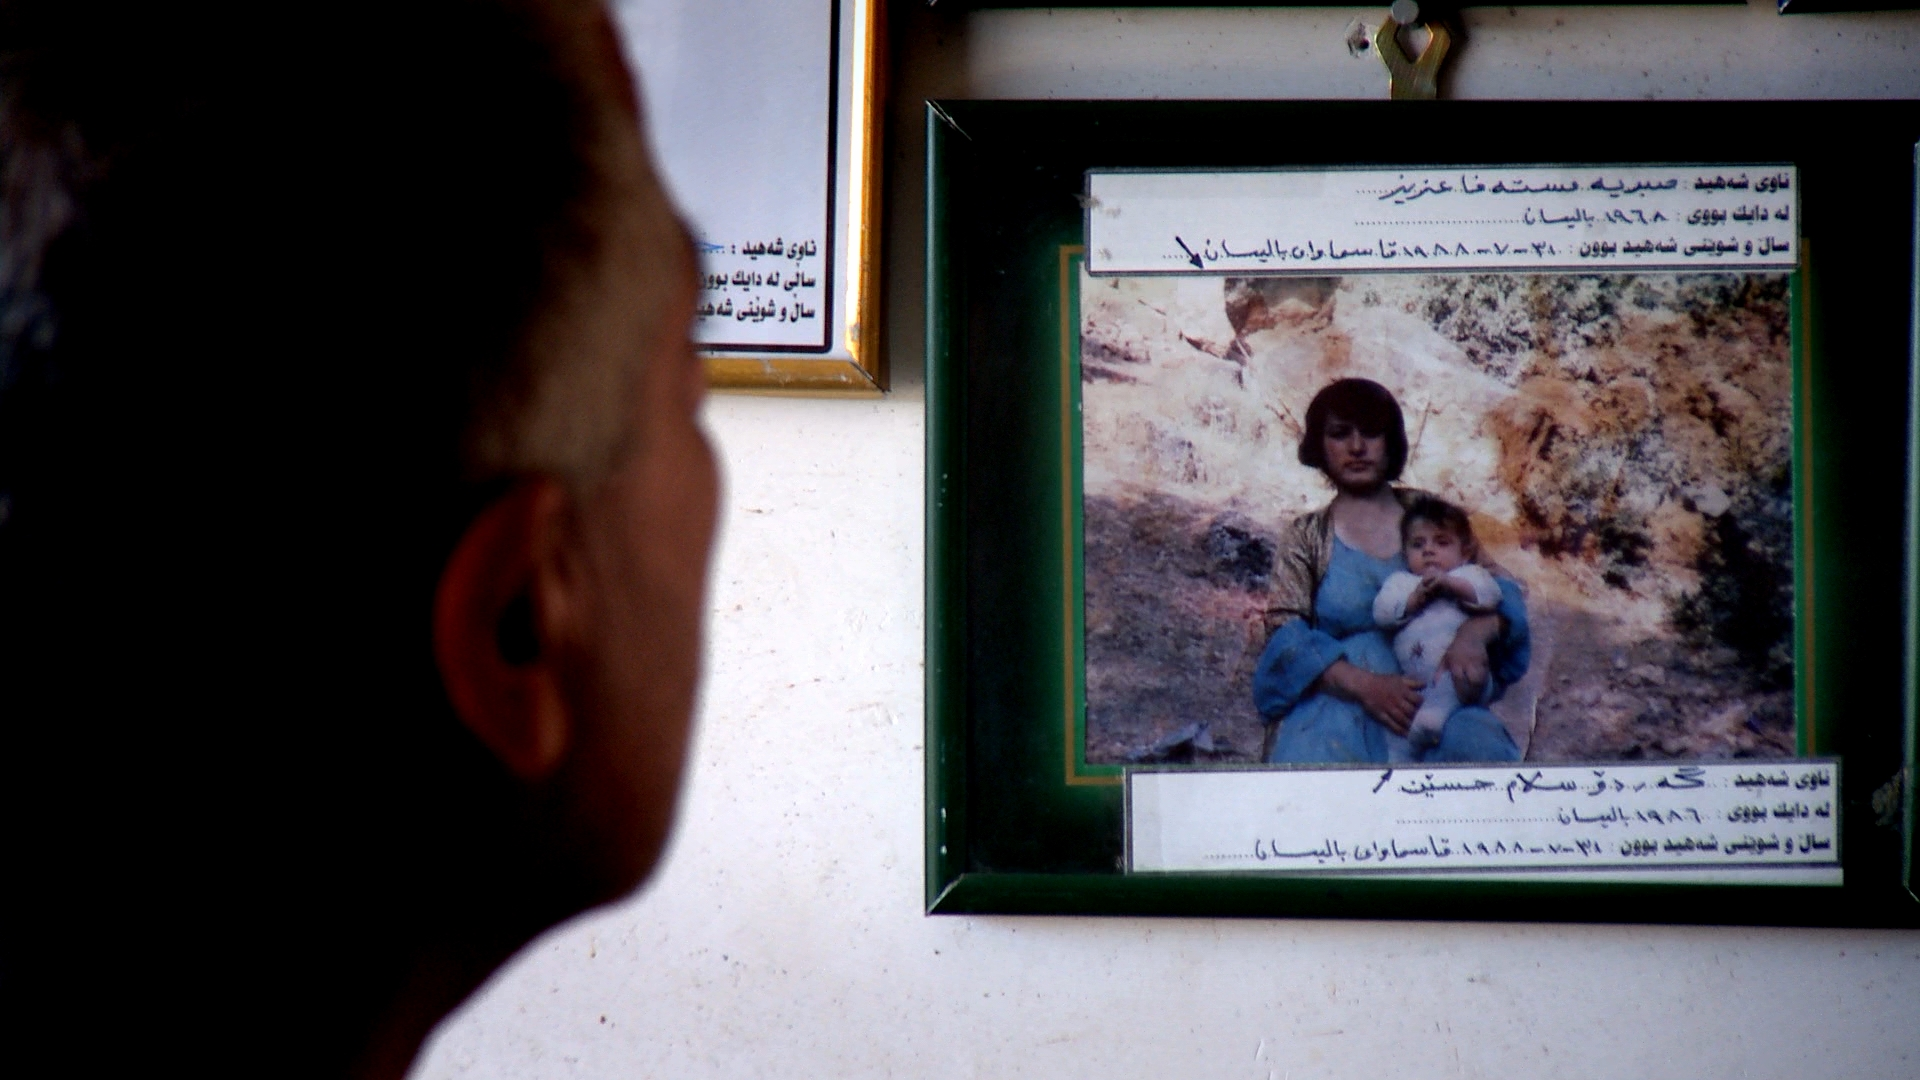 SALAM HUSSEIN AZIZ's baby son died in his arms after a chemical attack on the Balisan valley in 1988. He found the bodies of his wife and other children in a shelter close to Sheikh Wasan village.